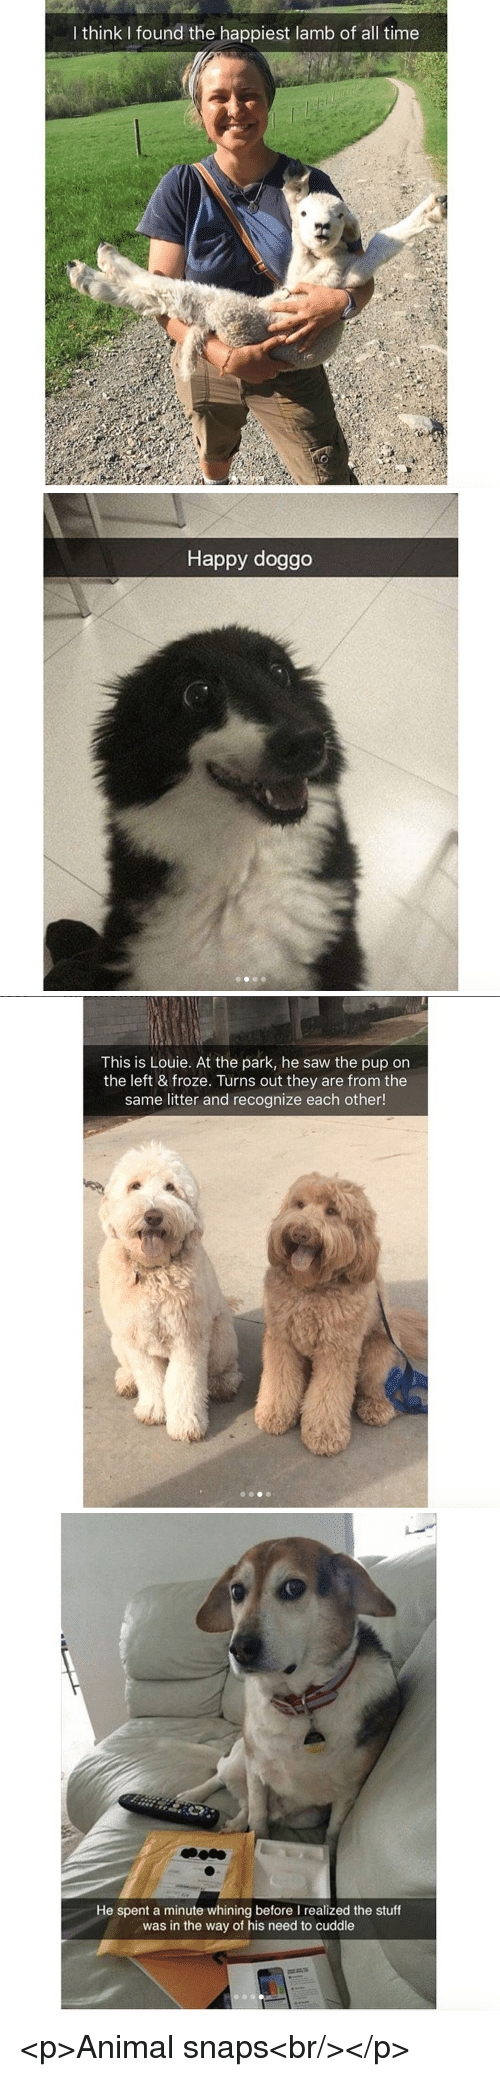 Saw, Animal, and Happy: I think I found the happiest lamb of all time   Happy doggo   This is Louie. At the park, he saw the pup on  the left & froze. Turns out they are from the  same litter and recognize each other!   h@  He spent a minute whining before I realized the stuff  was in the way of his need to cuddle <p>Animal snaps<br/></p>